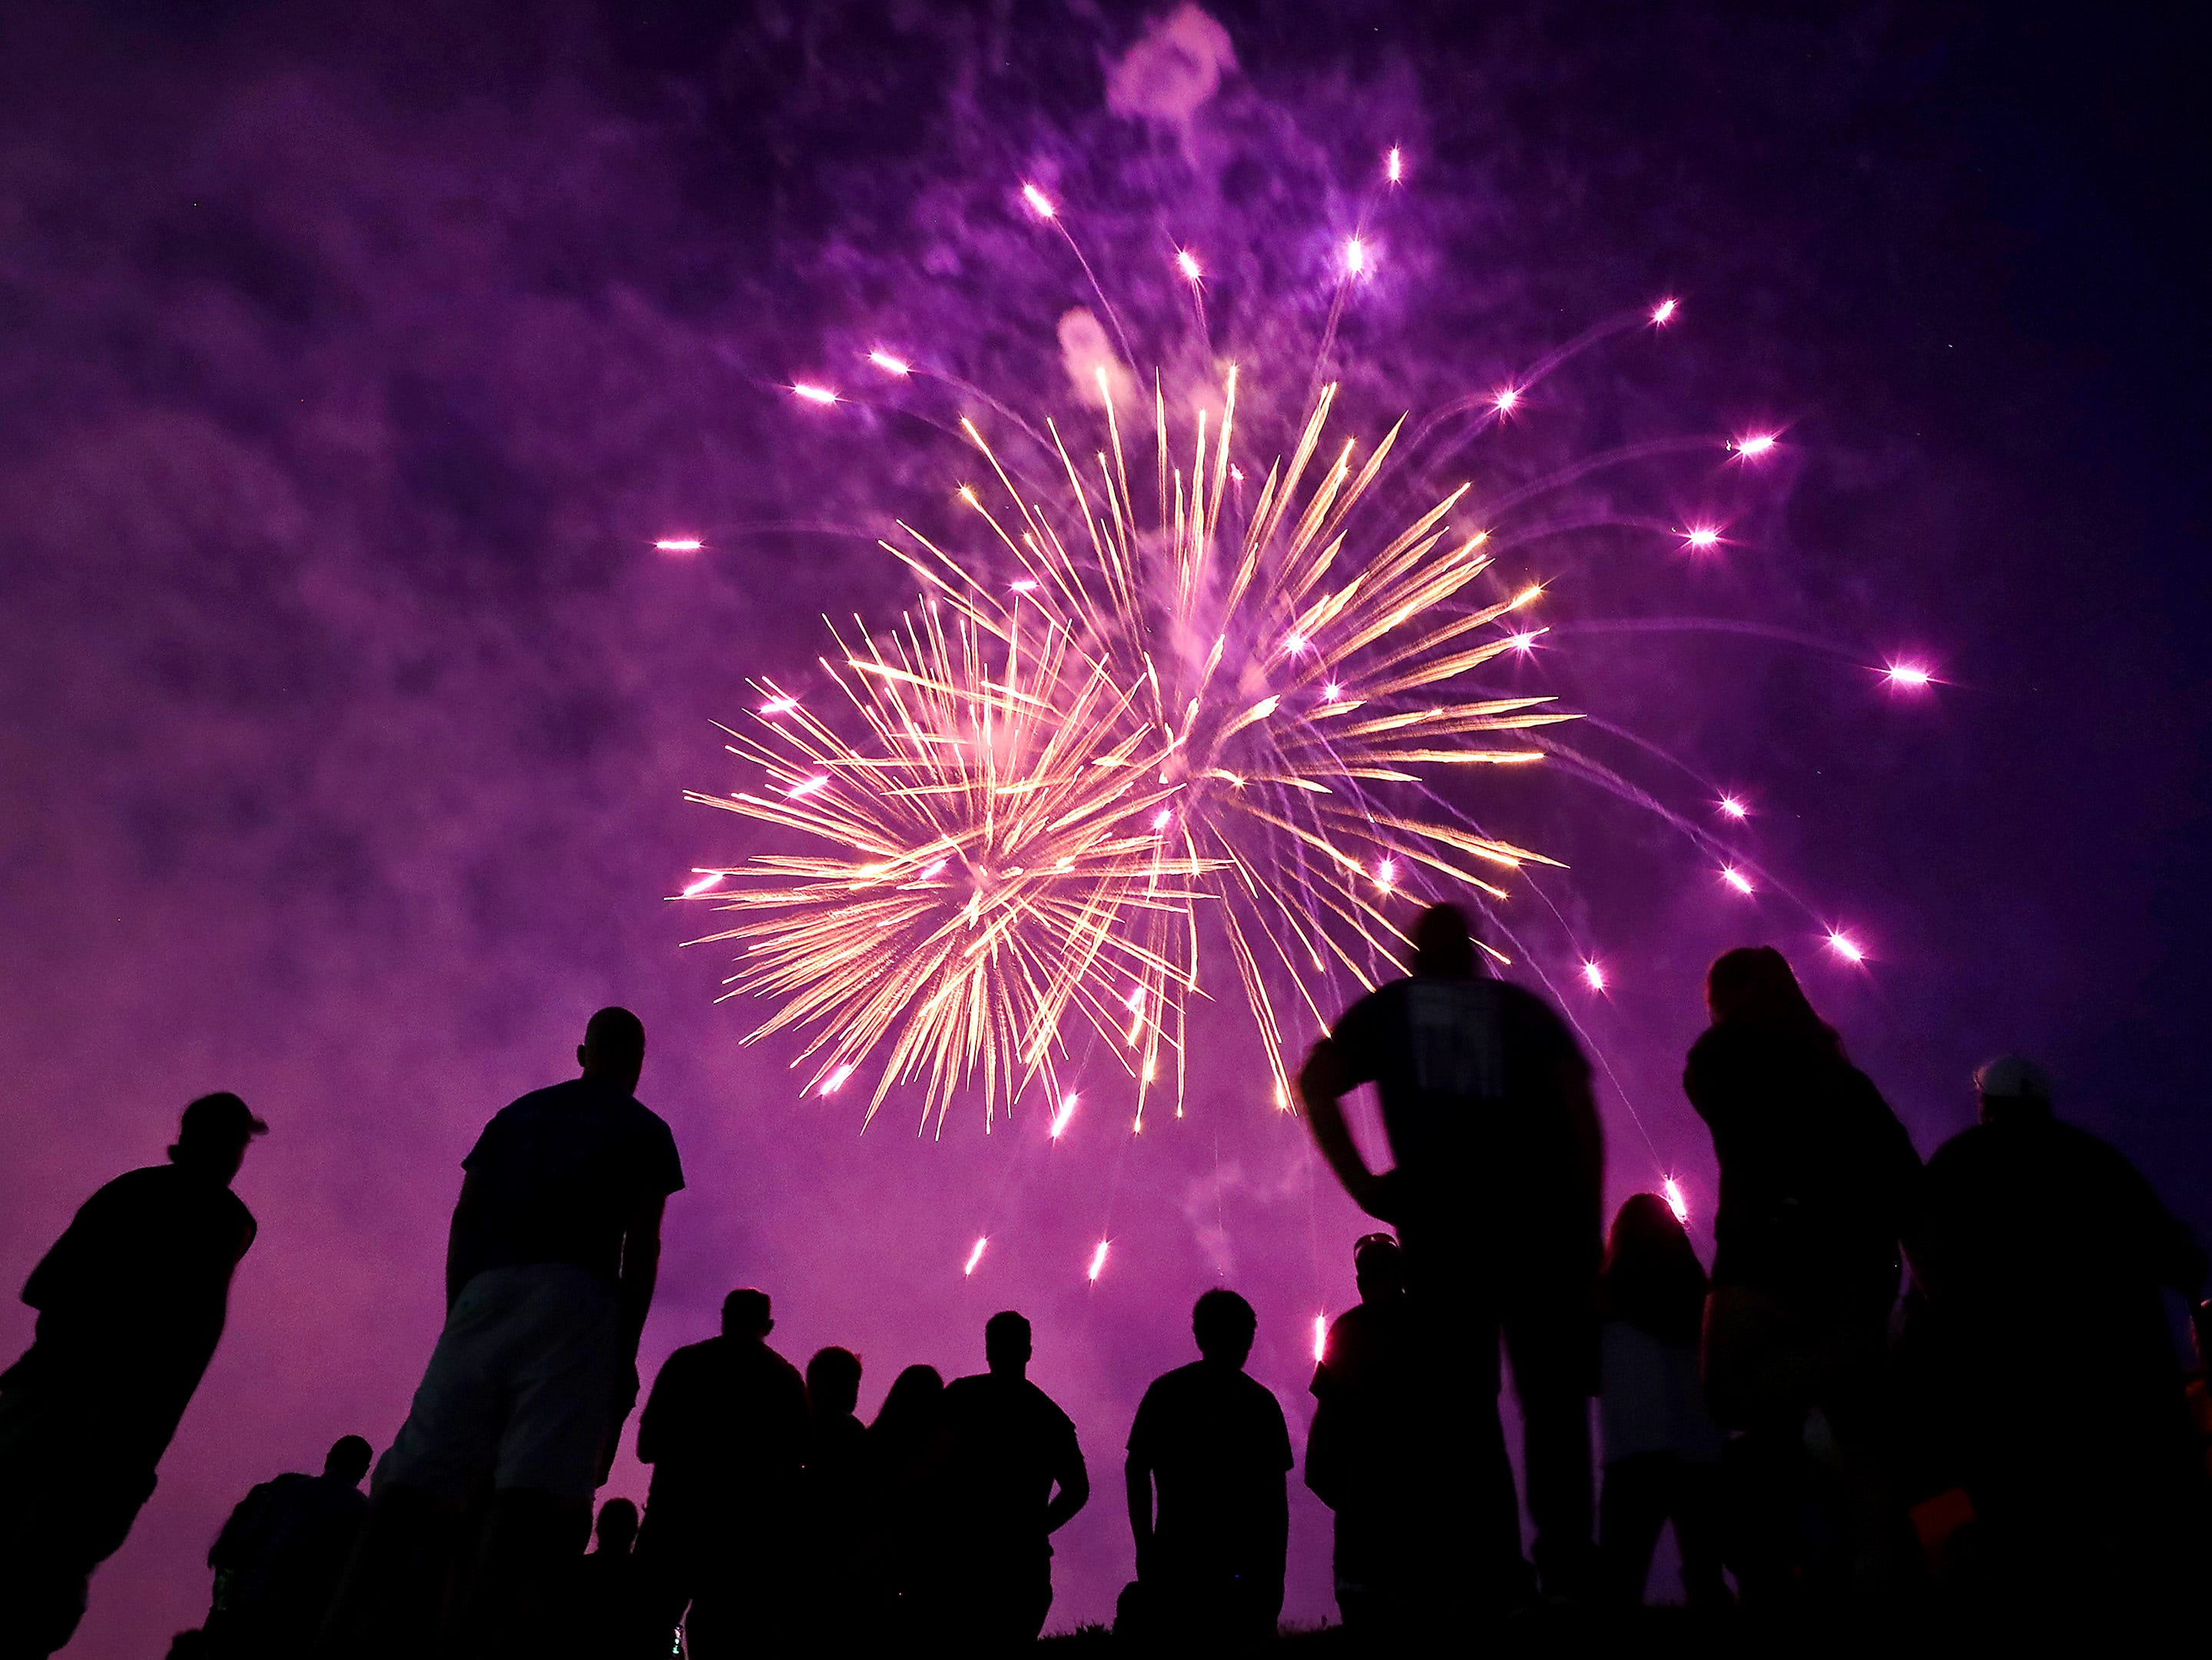 The annual Festival Foods Fireworks on Tuesday, July 3, 2018 at Memorial Park in Appleton, Wis.